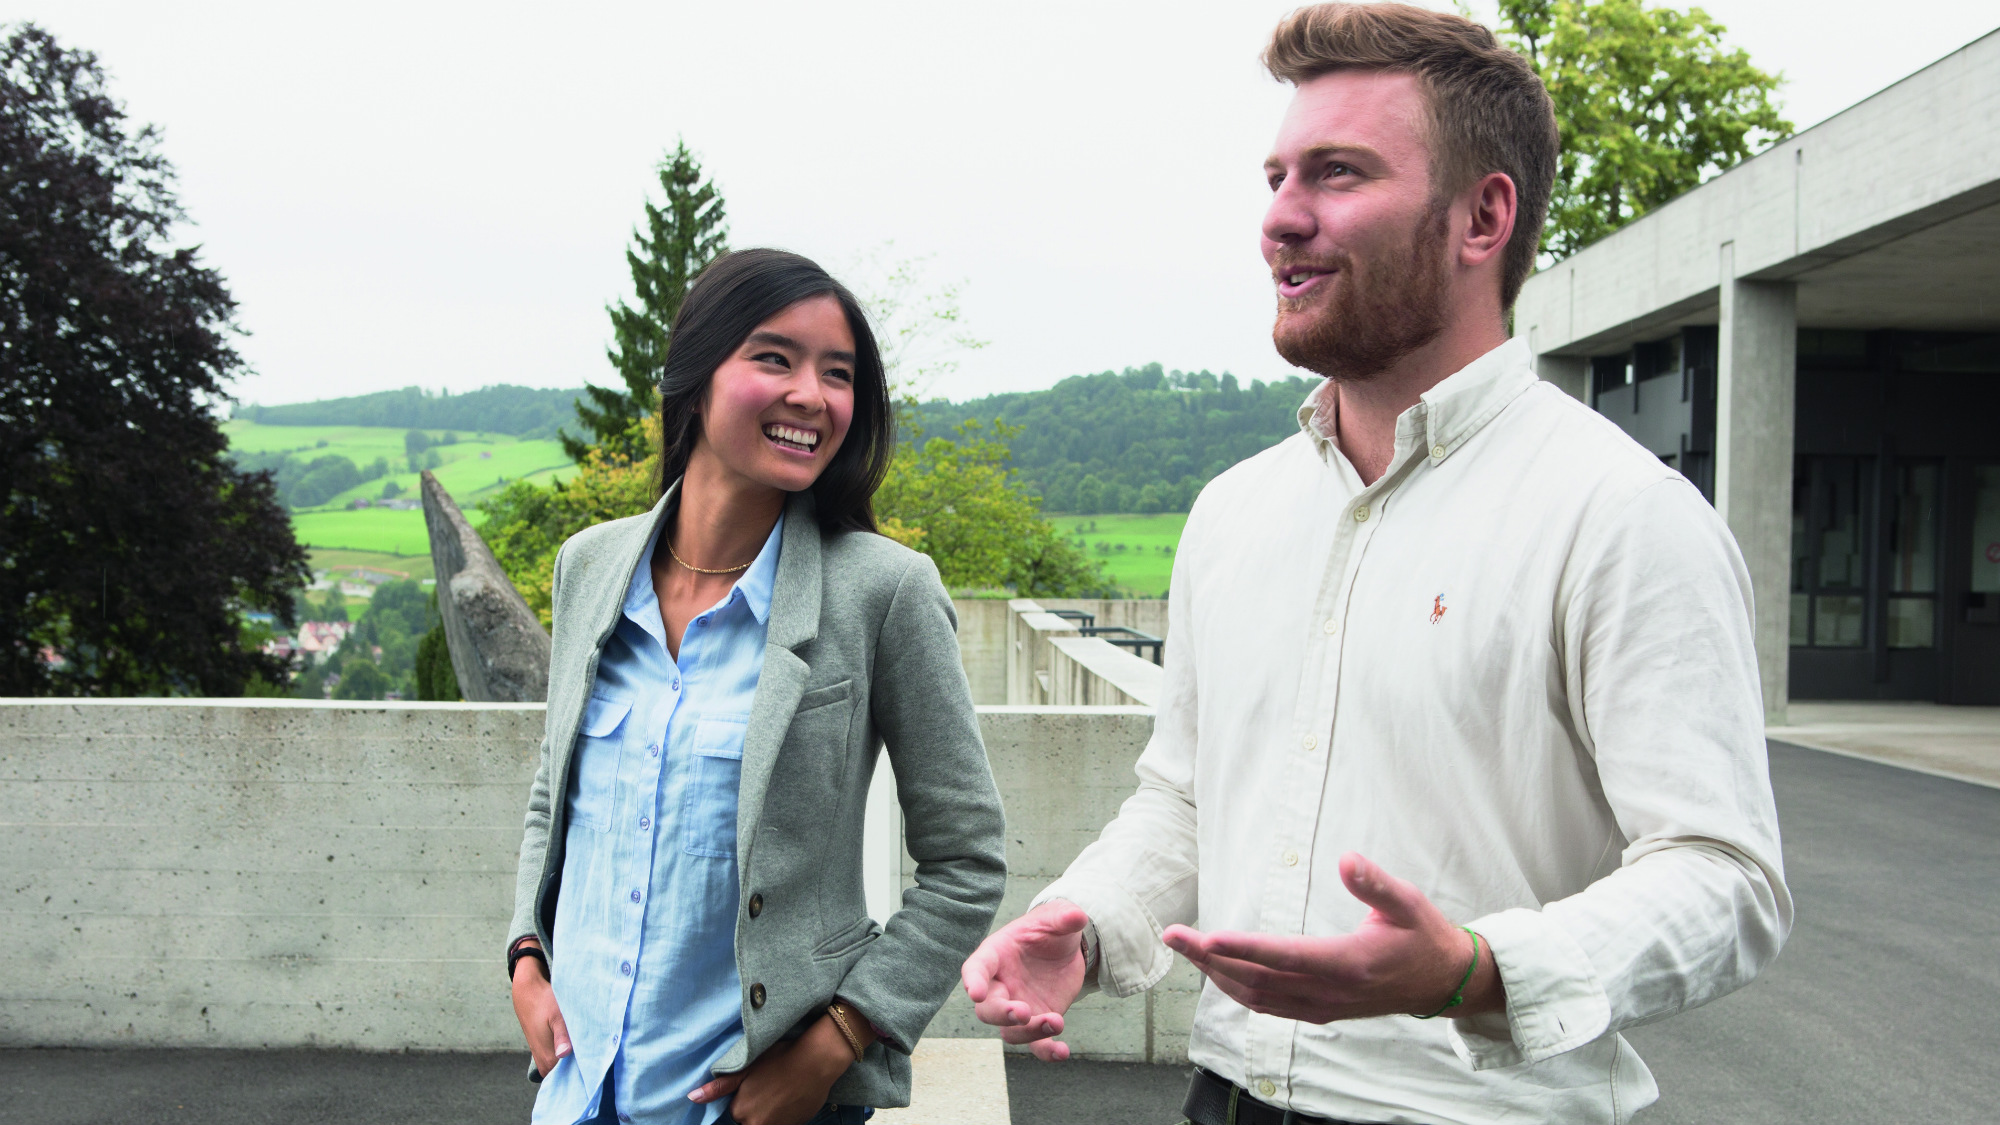 Two students outside, discussing at the University of St.Gallen (HSG)